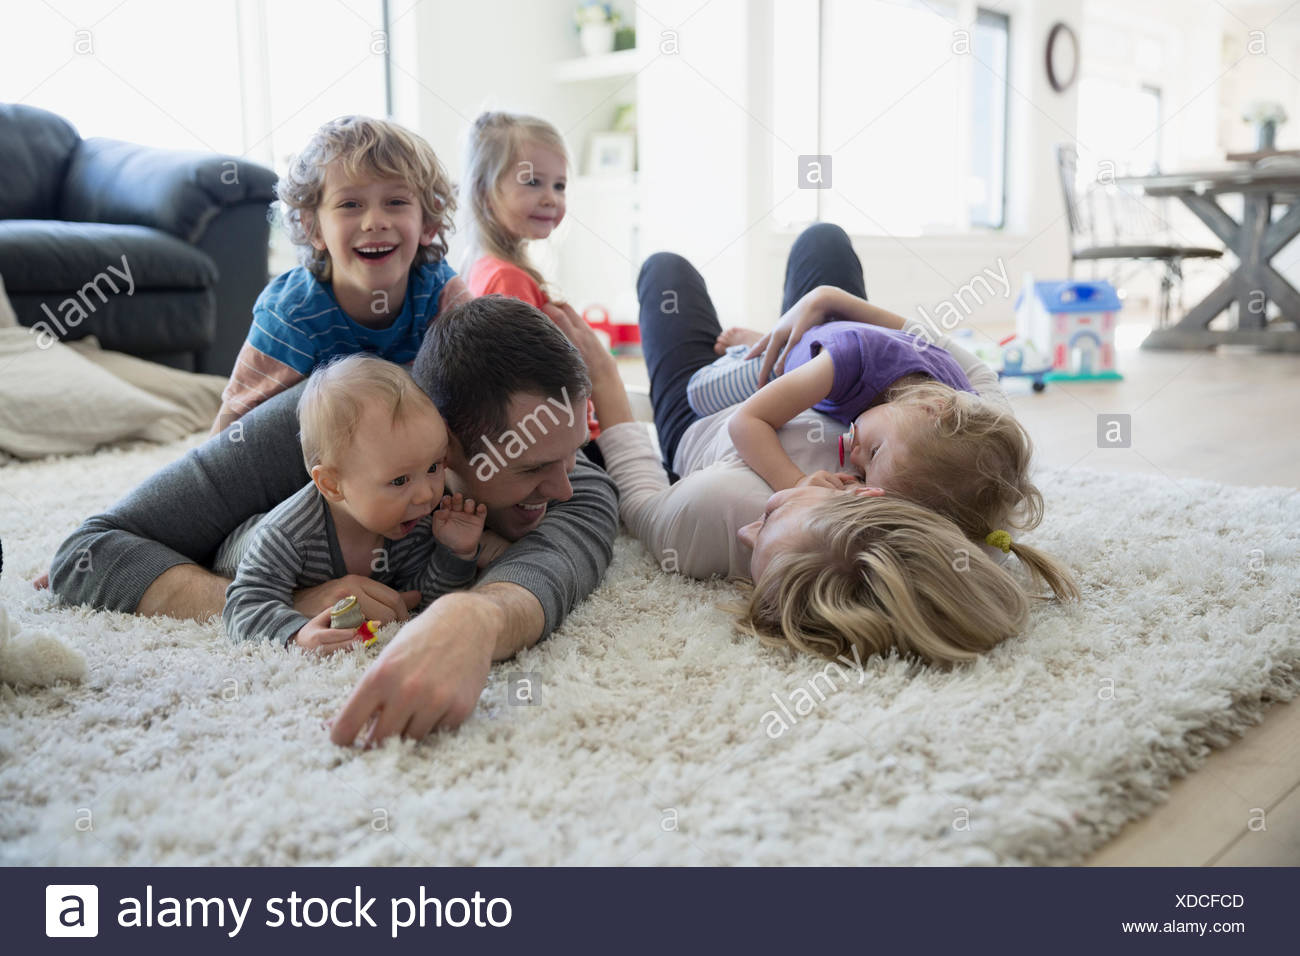 Family laying and relaxing on shag rug - Stock Image